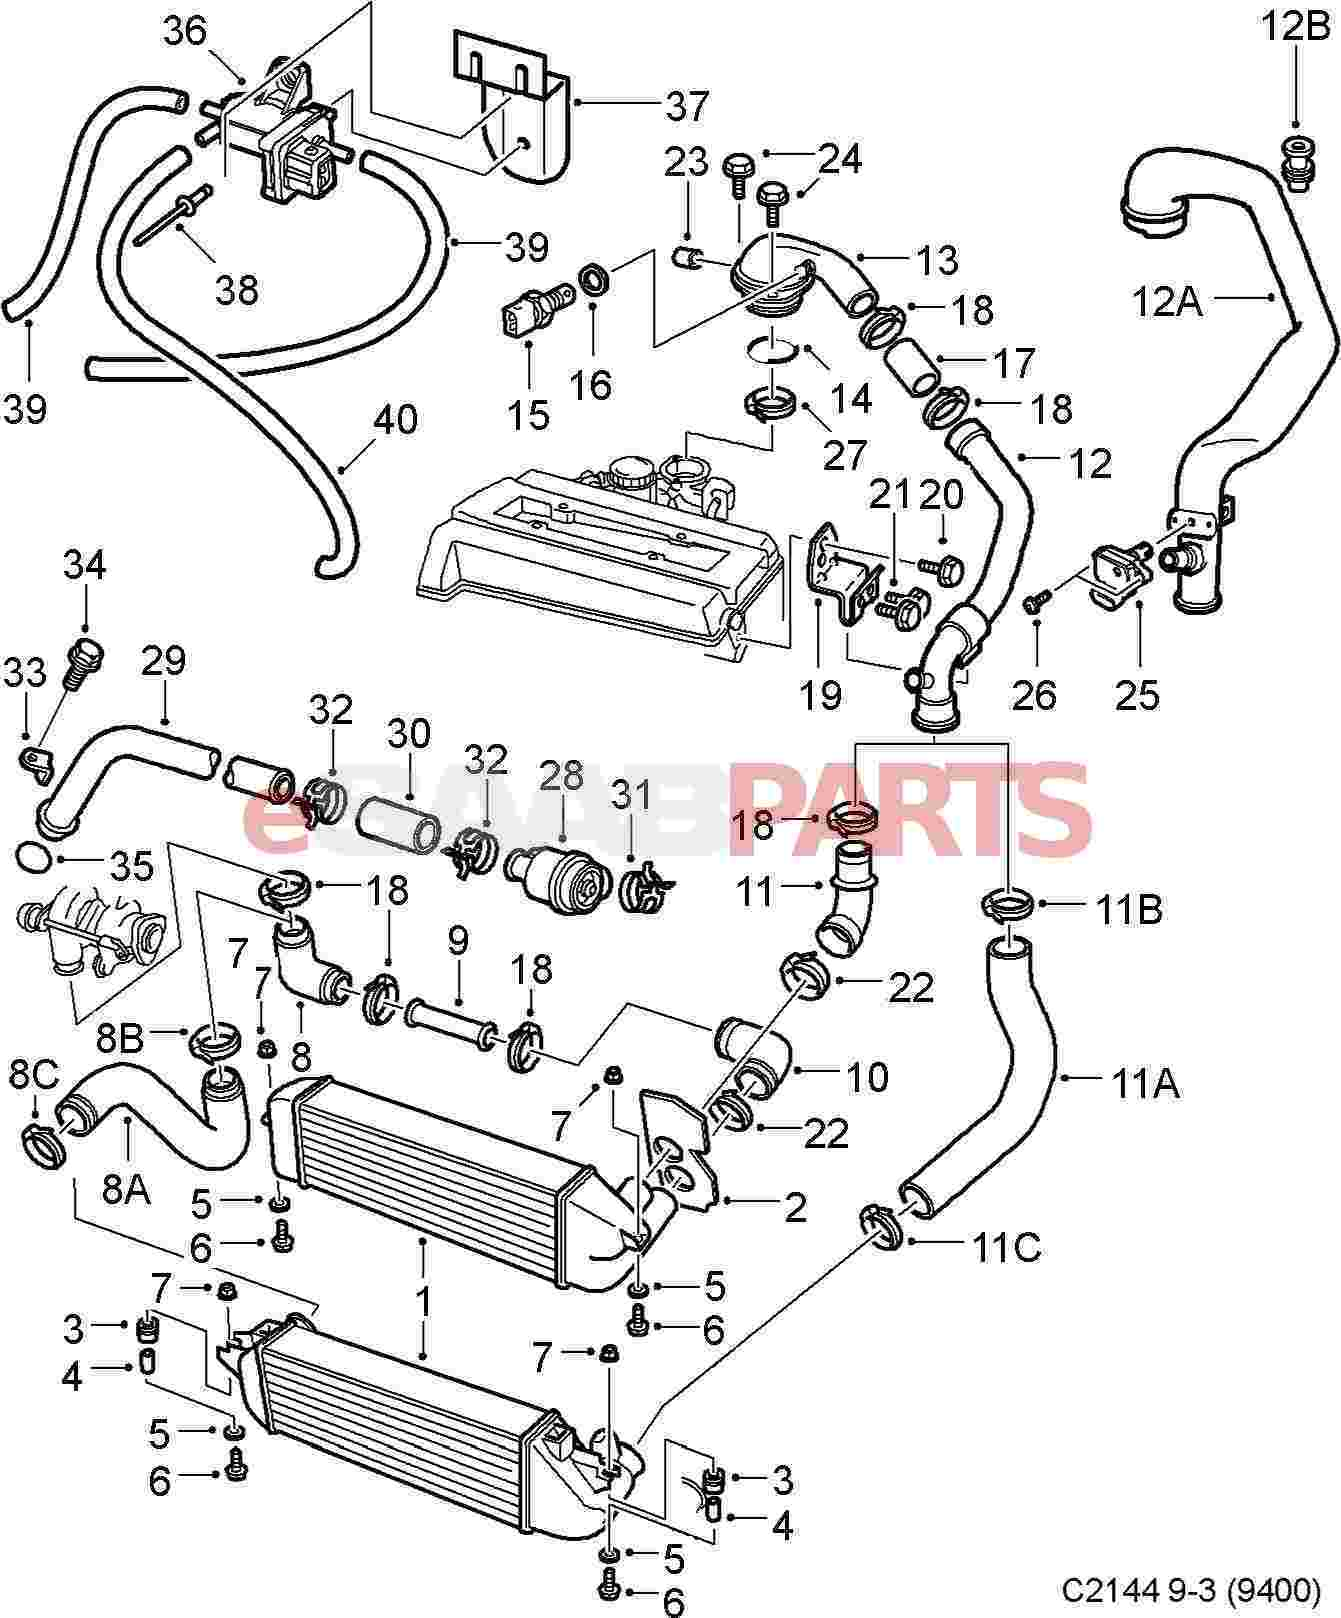 2001 Saab 9 3 Vacuum Diagram • Wiring Diagram For Free